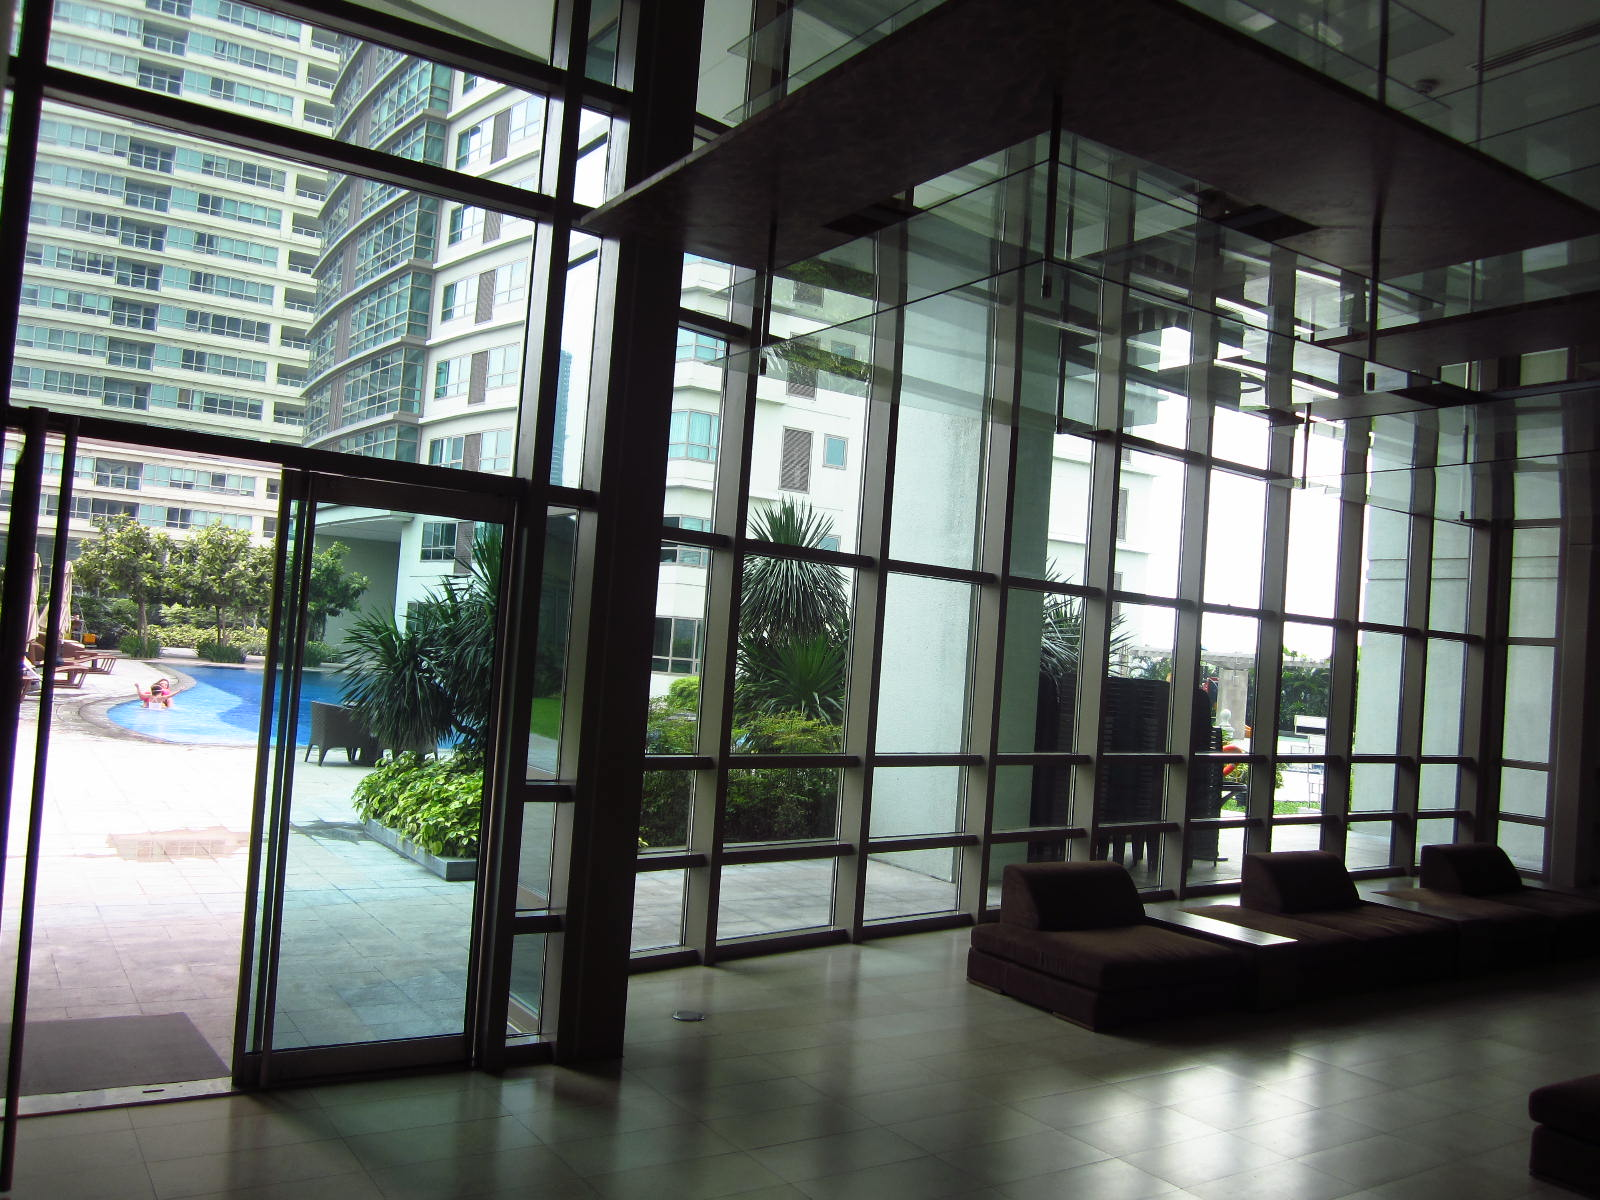 FOR RENT / LEASE: Apartment / Condo / Townhouse Manila Metropolitan Area > Makati 19